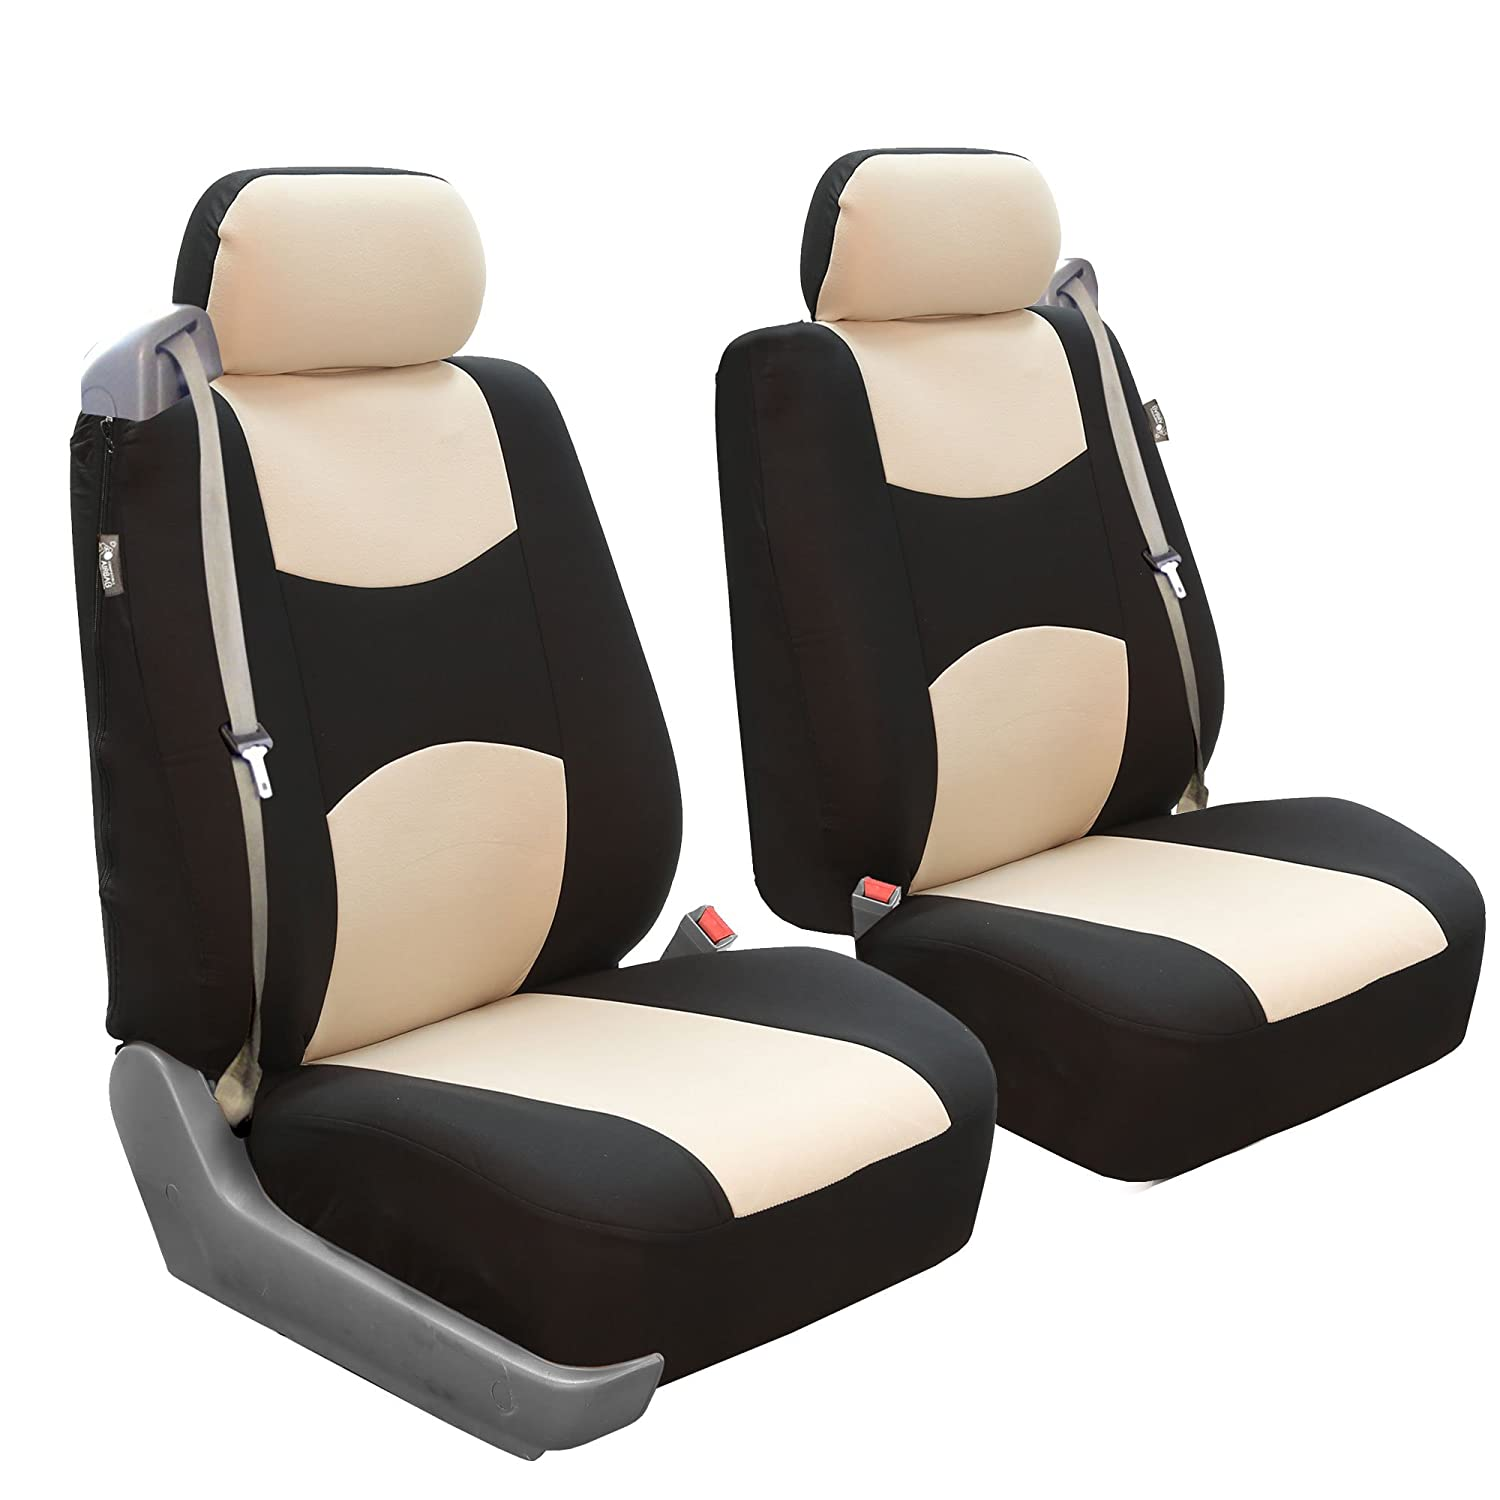 Set of 2 FH Group FB351GRAY102 Gray Flat Cloth Built-in Seatbelt Compatible Low Back Seat Cover